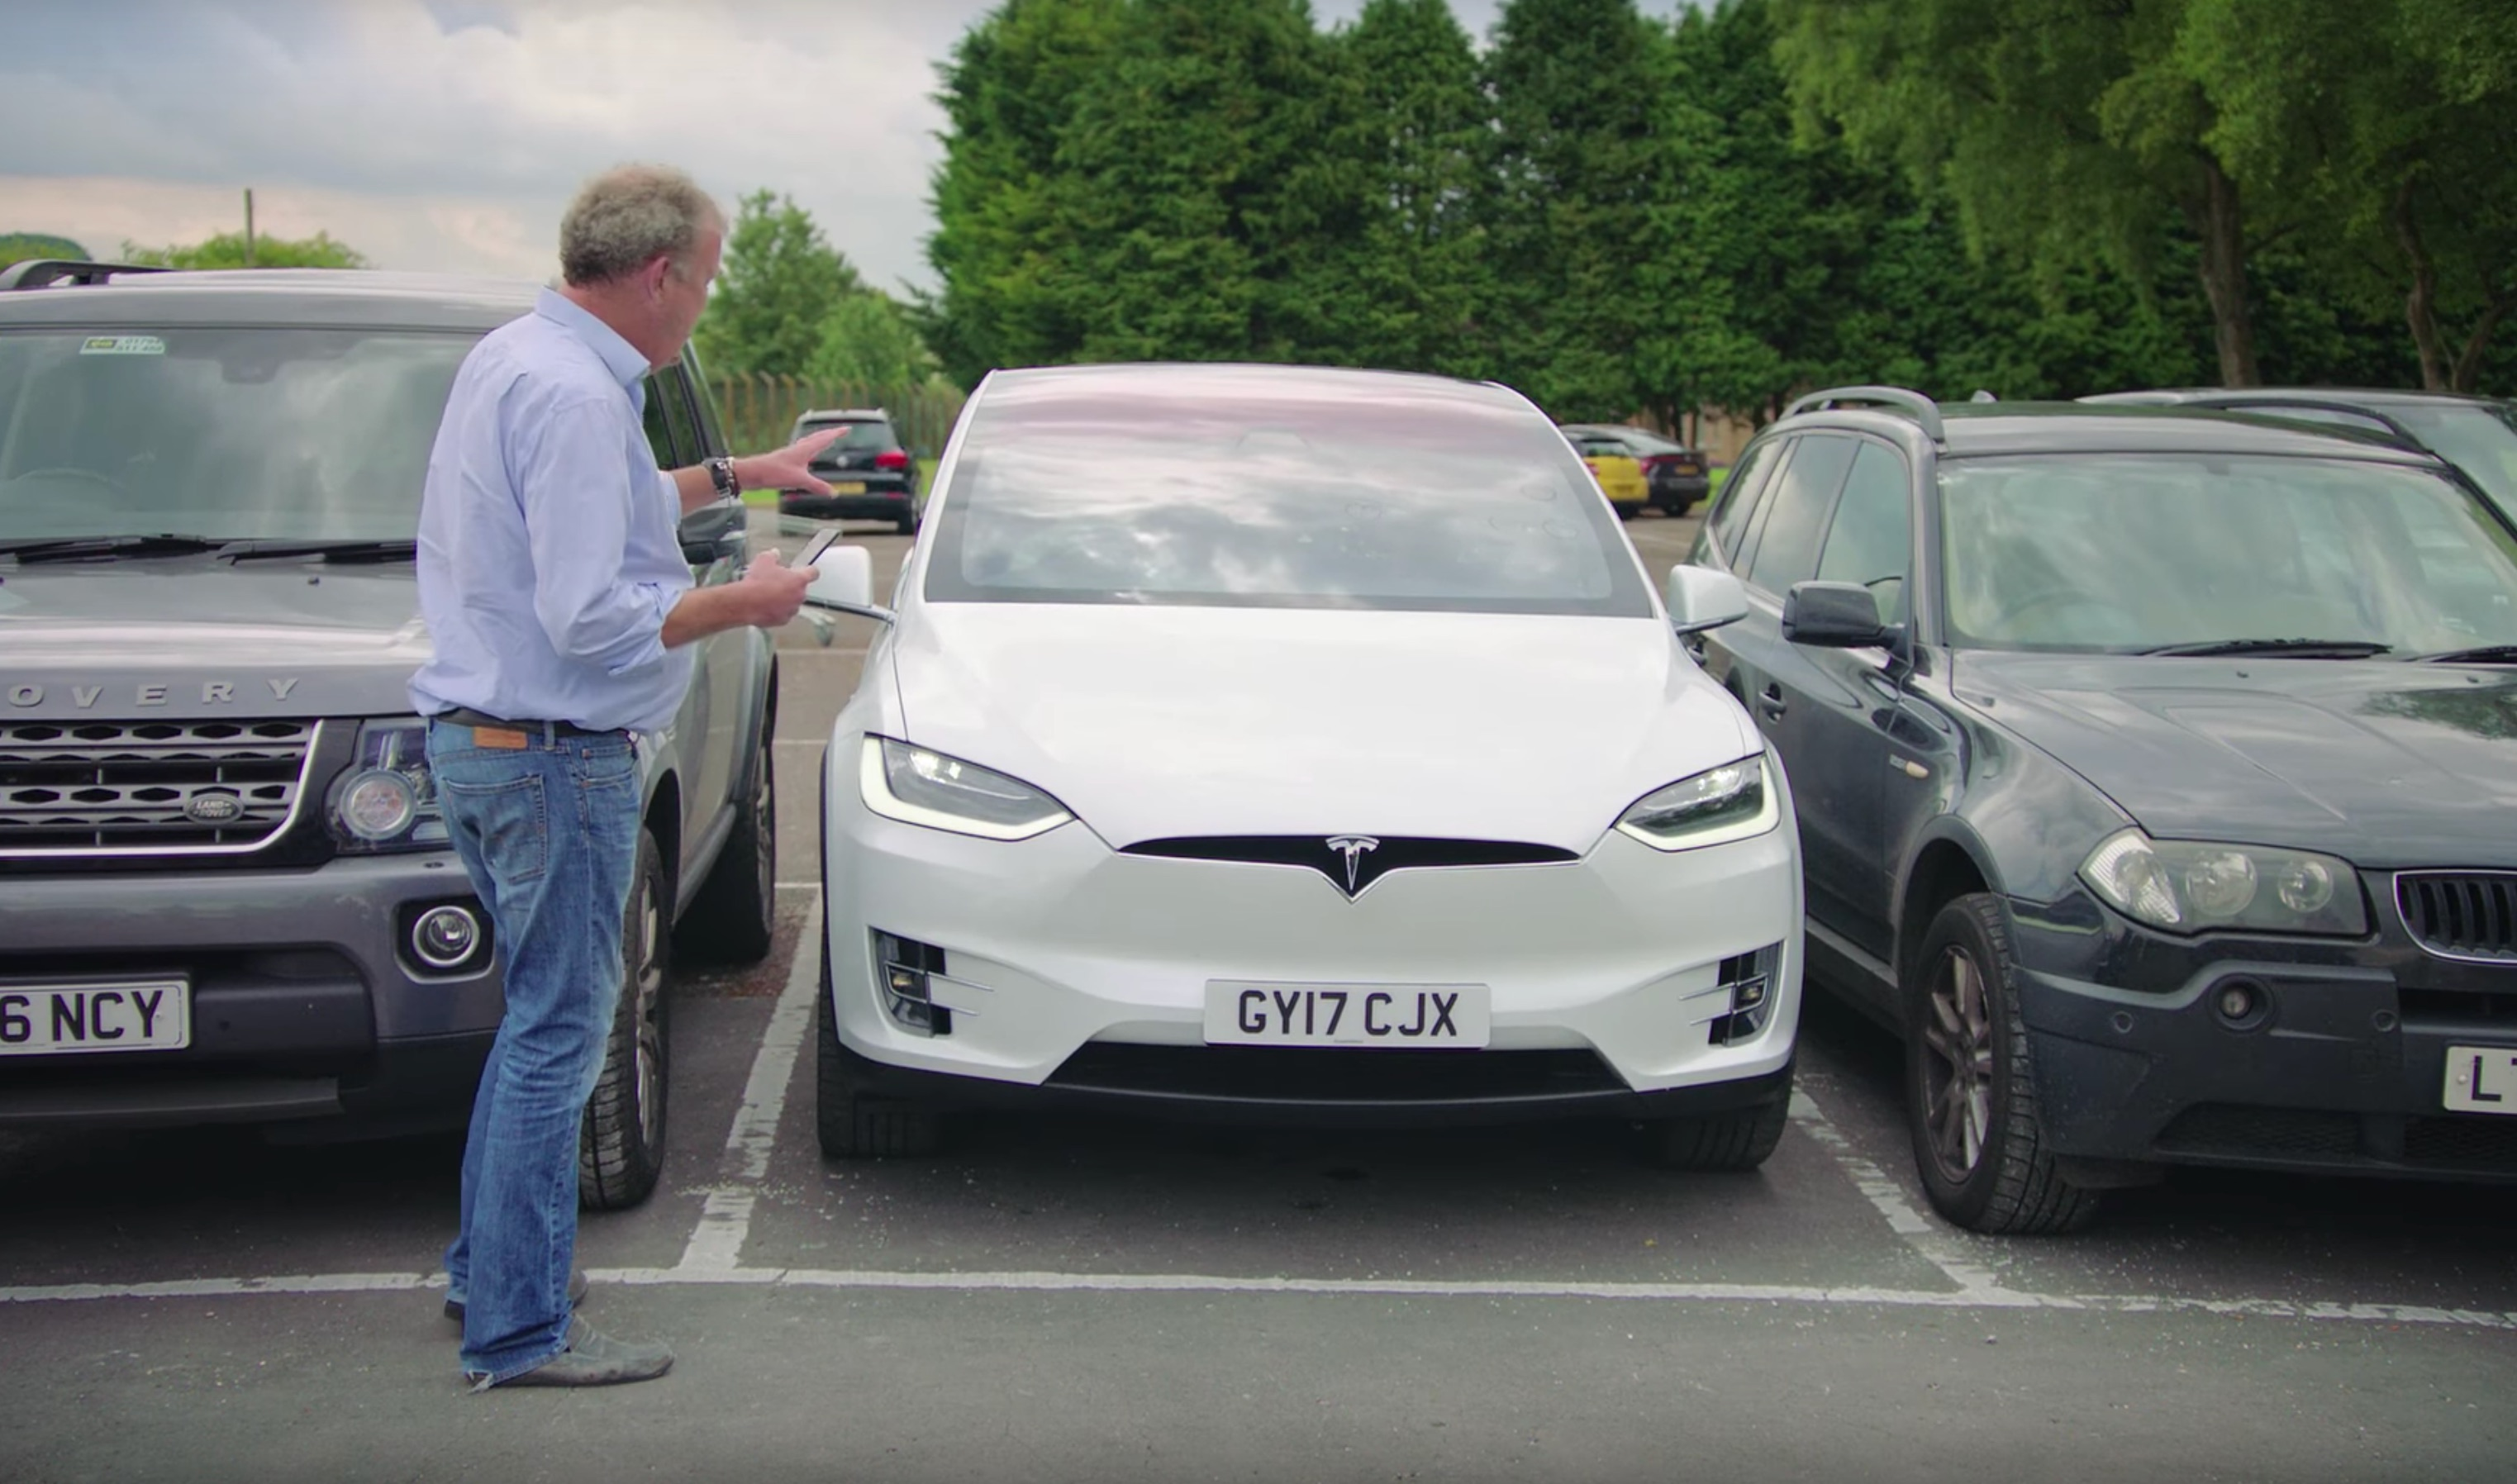 jeremy-clarkson-grand-tour-tesla-model-x-review-parking